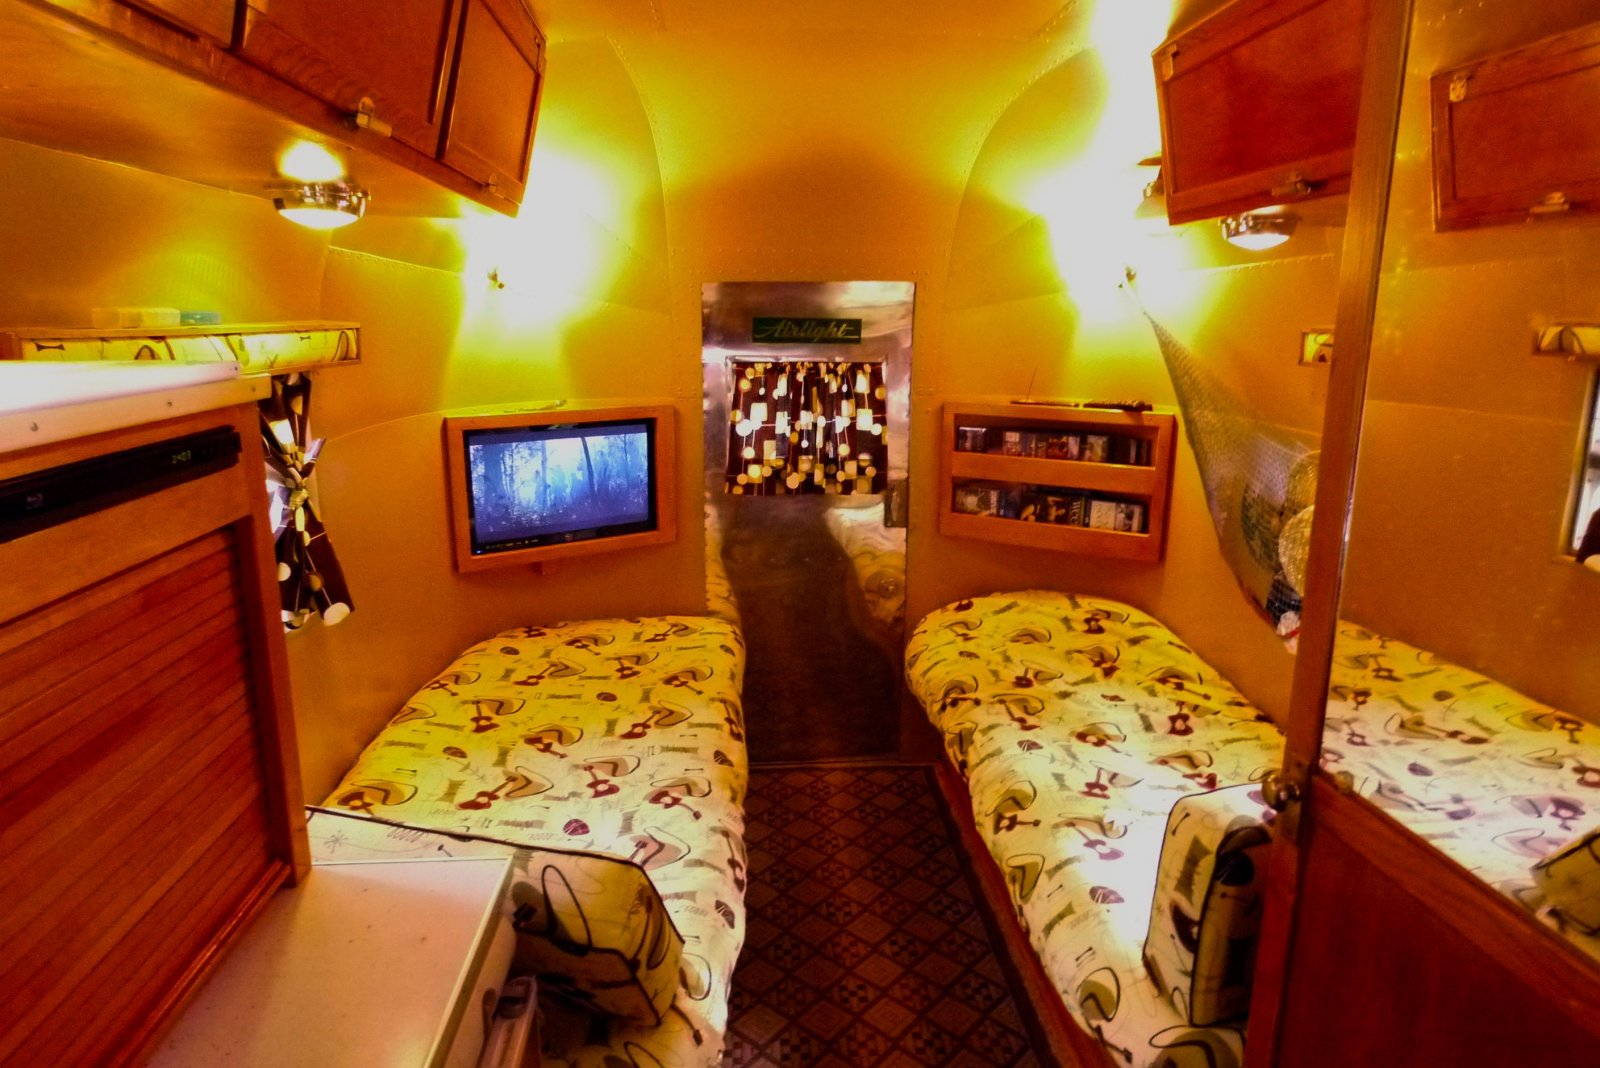 Click image for larger version  Name:Airlight interior flatscreen.jpg Views:85 Size:265.4 KB ID:253429